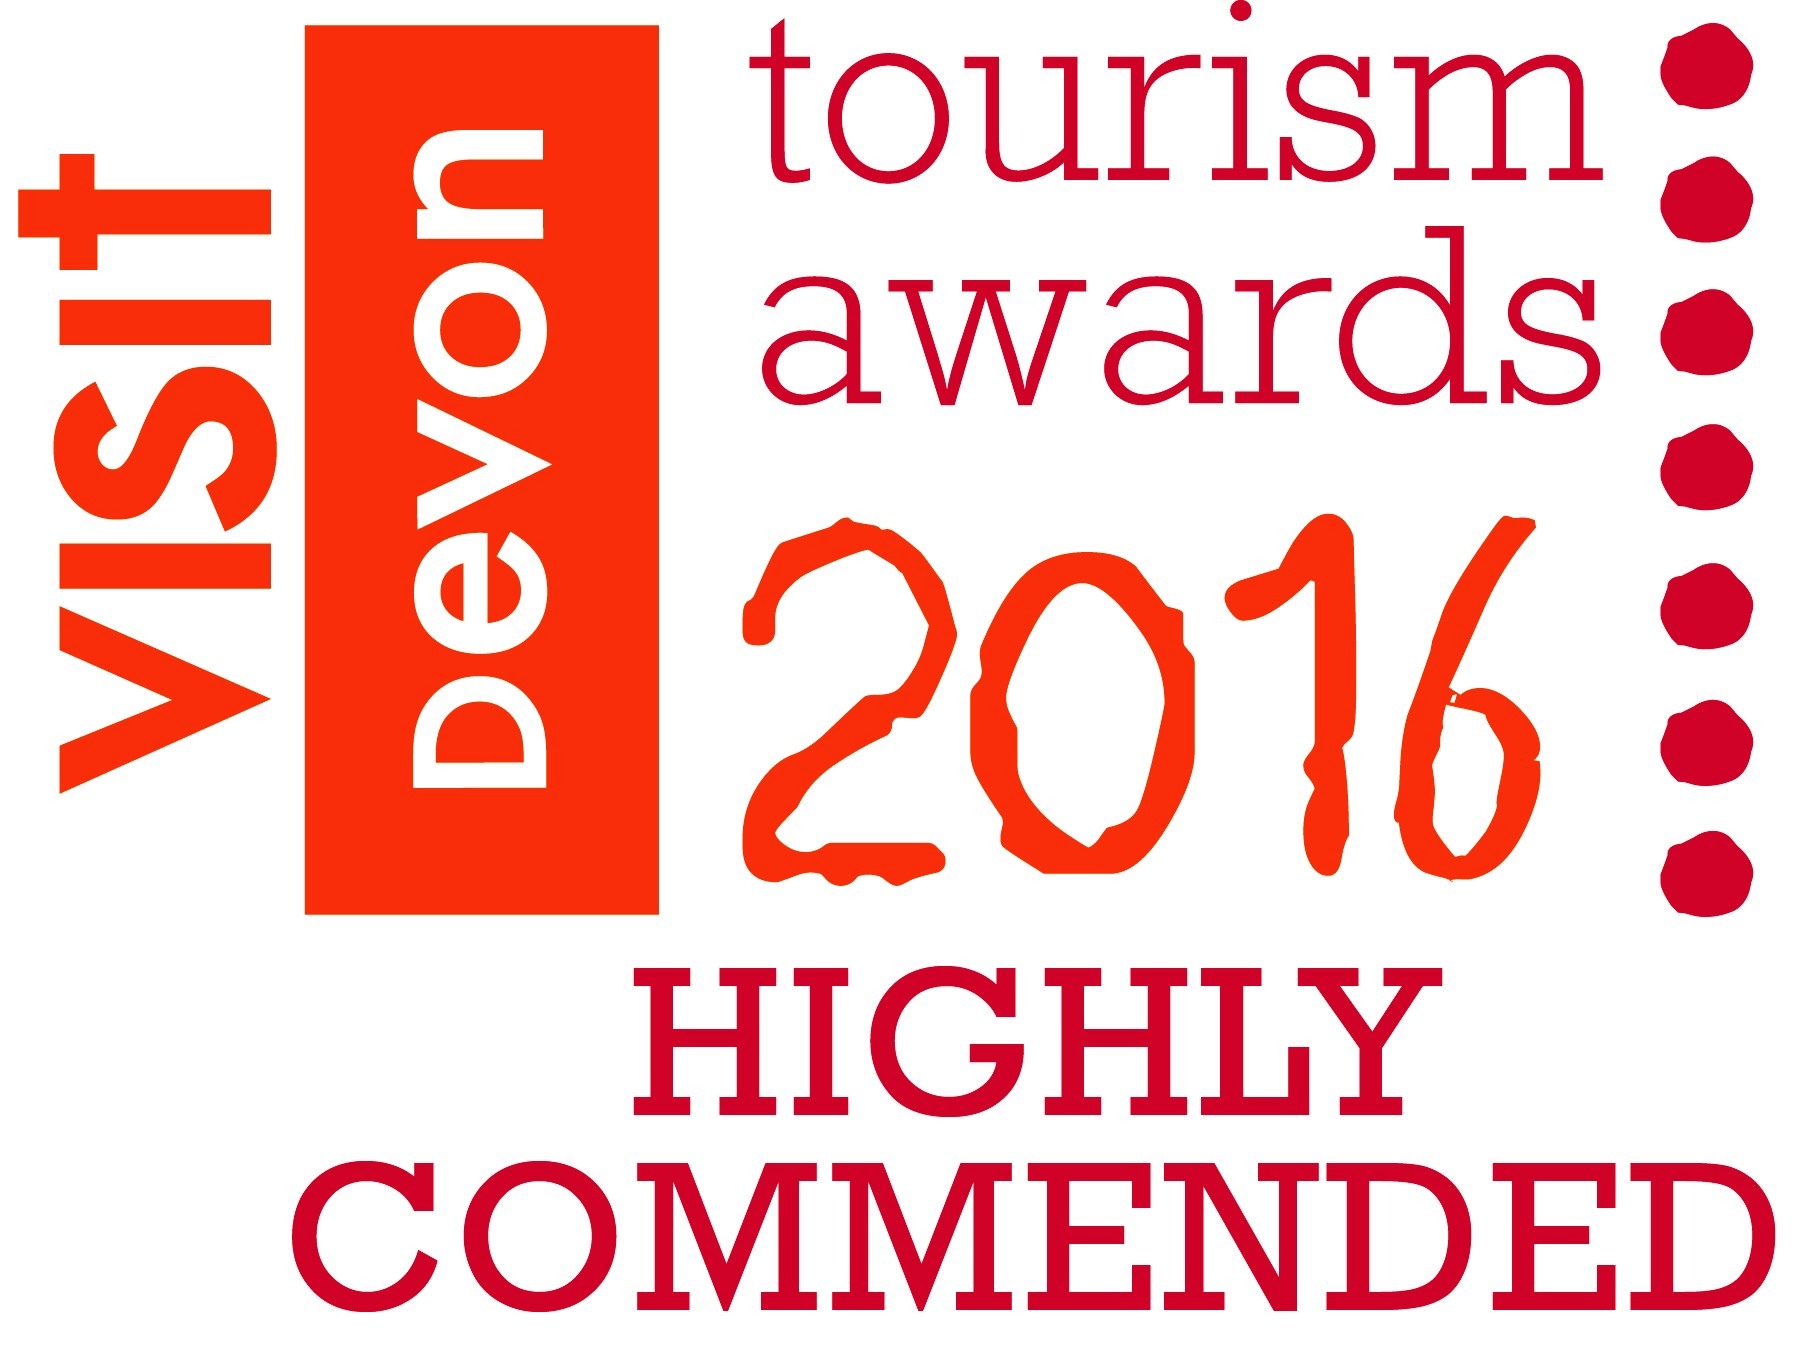 Visit Devon Highly Commended